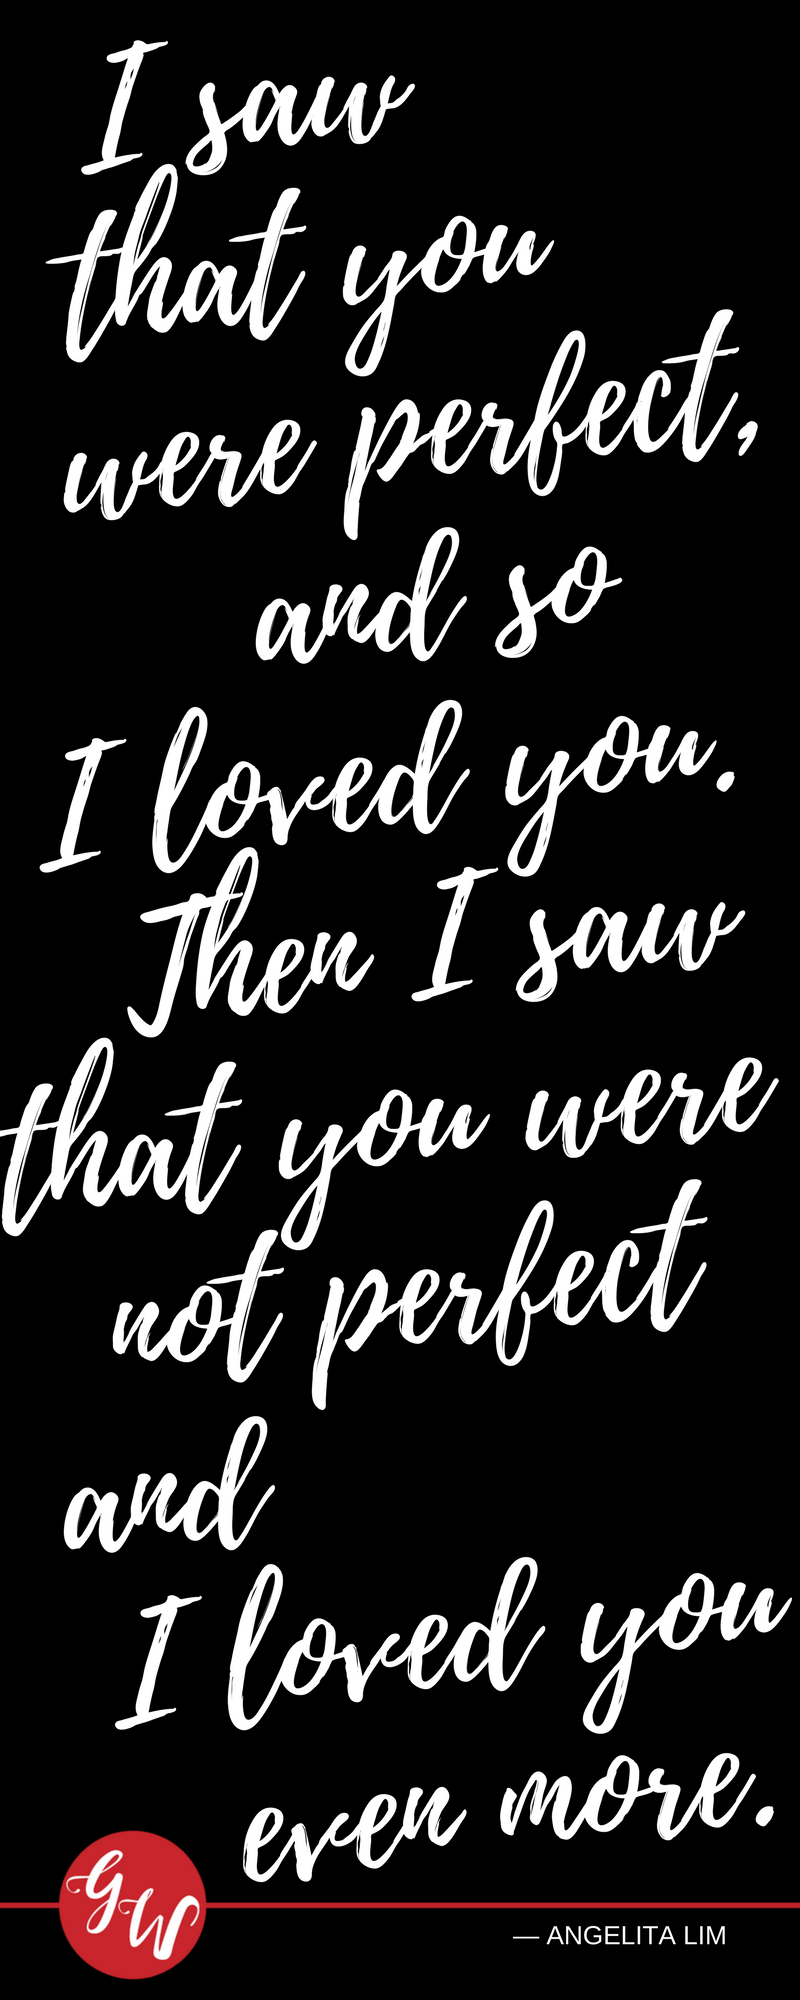 I Just Love You Whatever You Are Right Now And What You Would Be In The Future After We Become One Kutipan